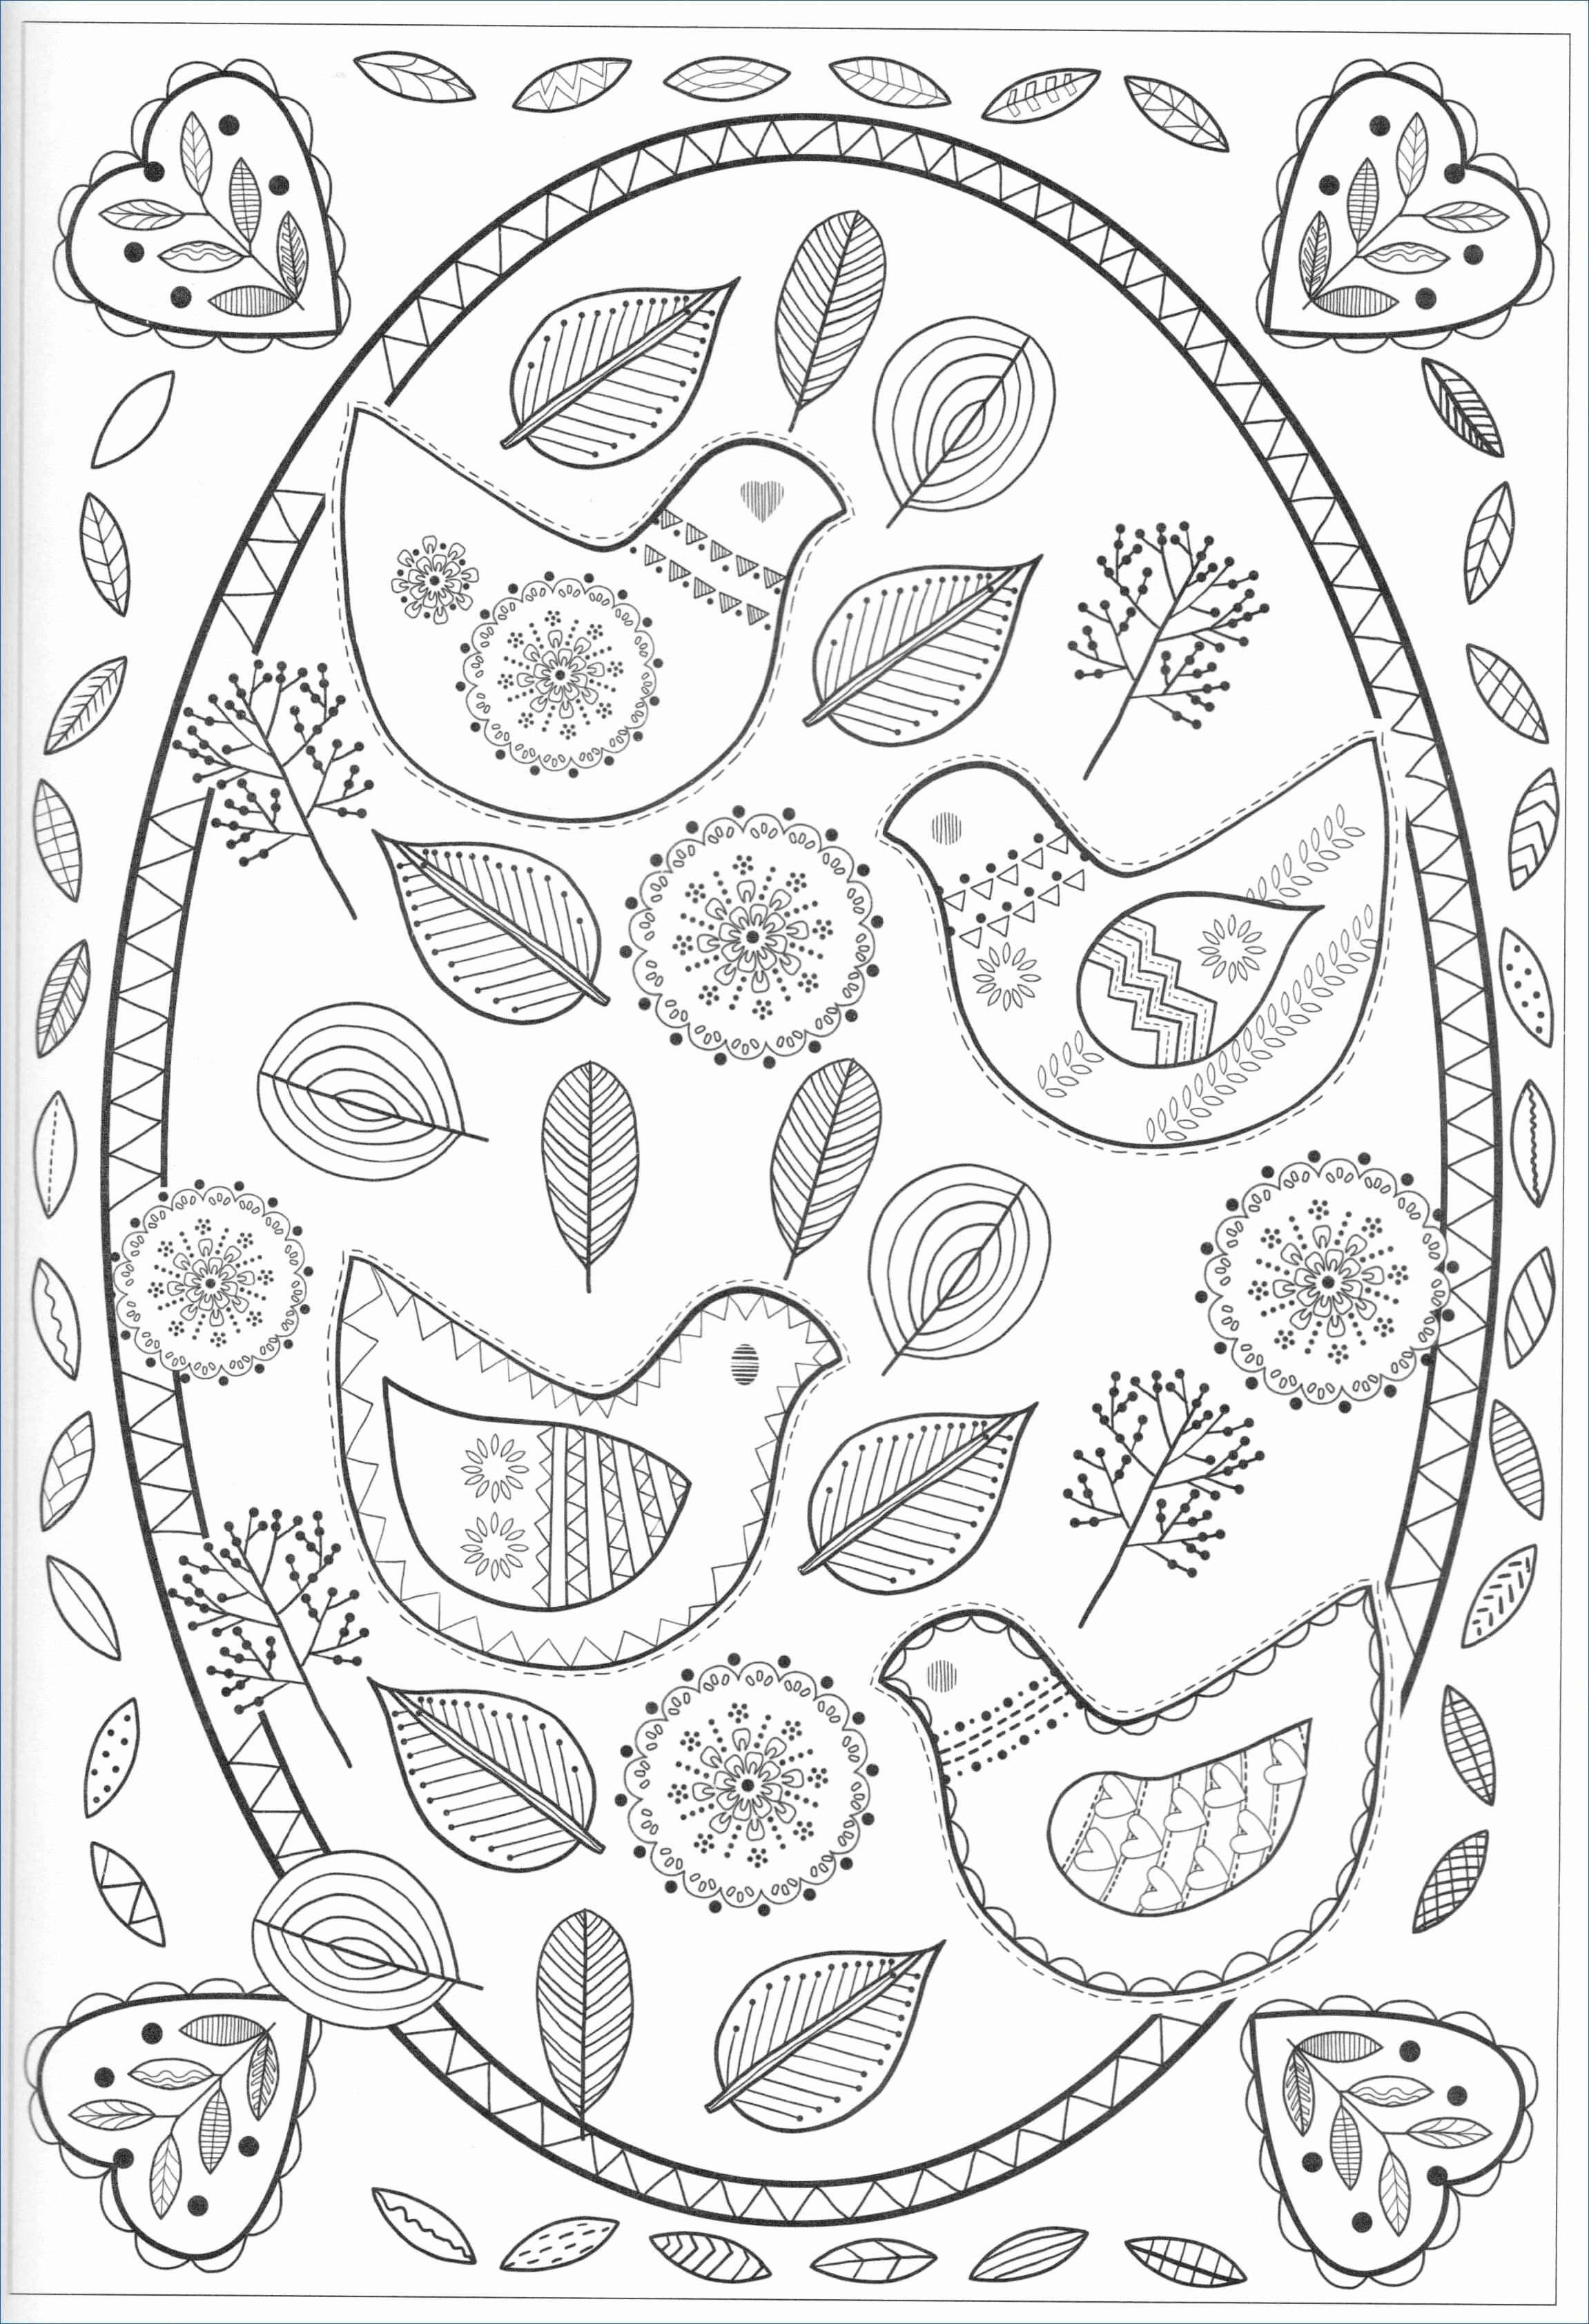 Art Of Animal Drawing Book Inspirational Fresh Coloring Book Games Mandala Coloring Pages Bird Coloring Pages Coloring Books